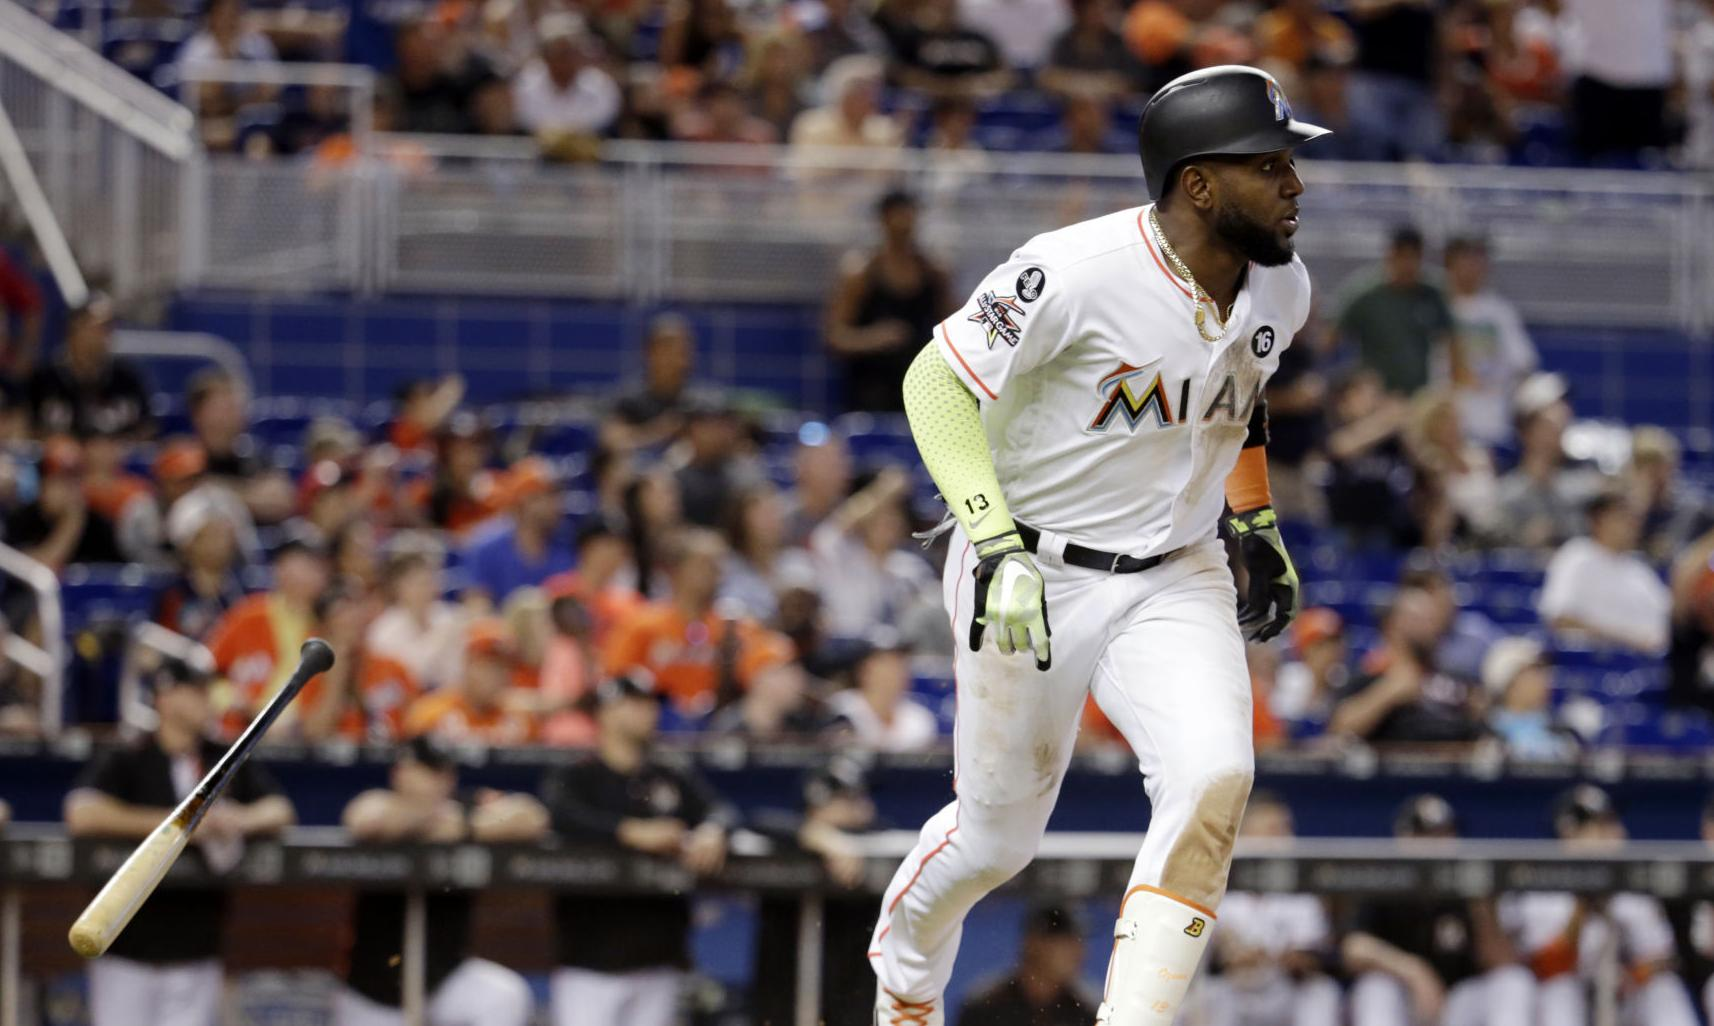 Marlins feel talks on Ozuna are moving, and Cardinals have desired prospects